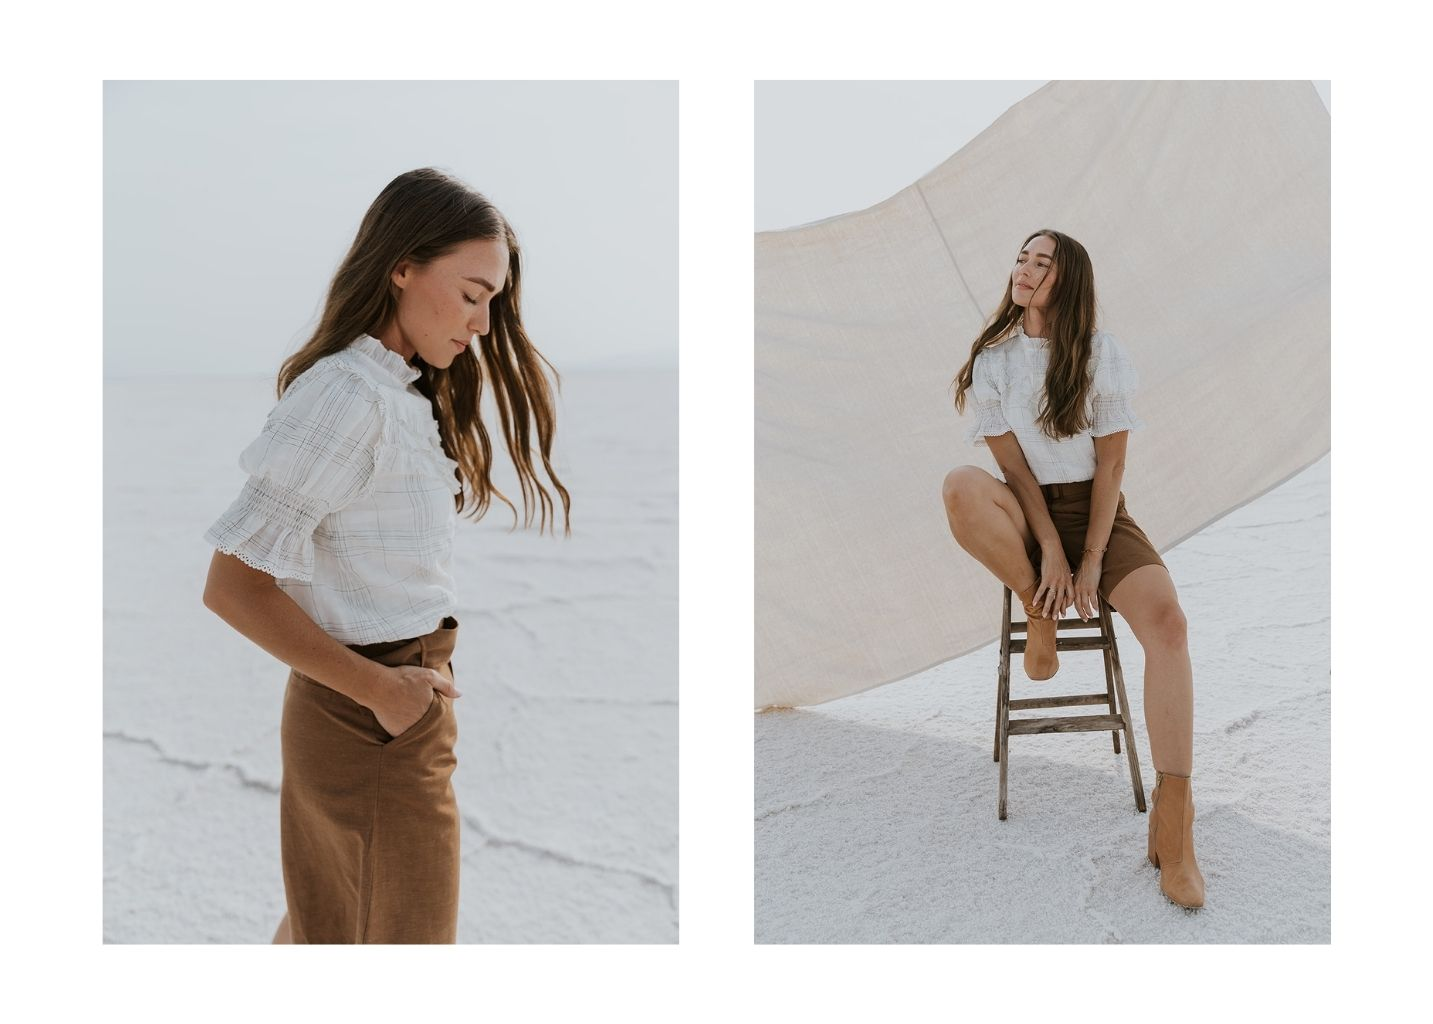 Salt. - a new women's clothing line by ROOLEE